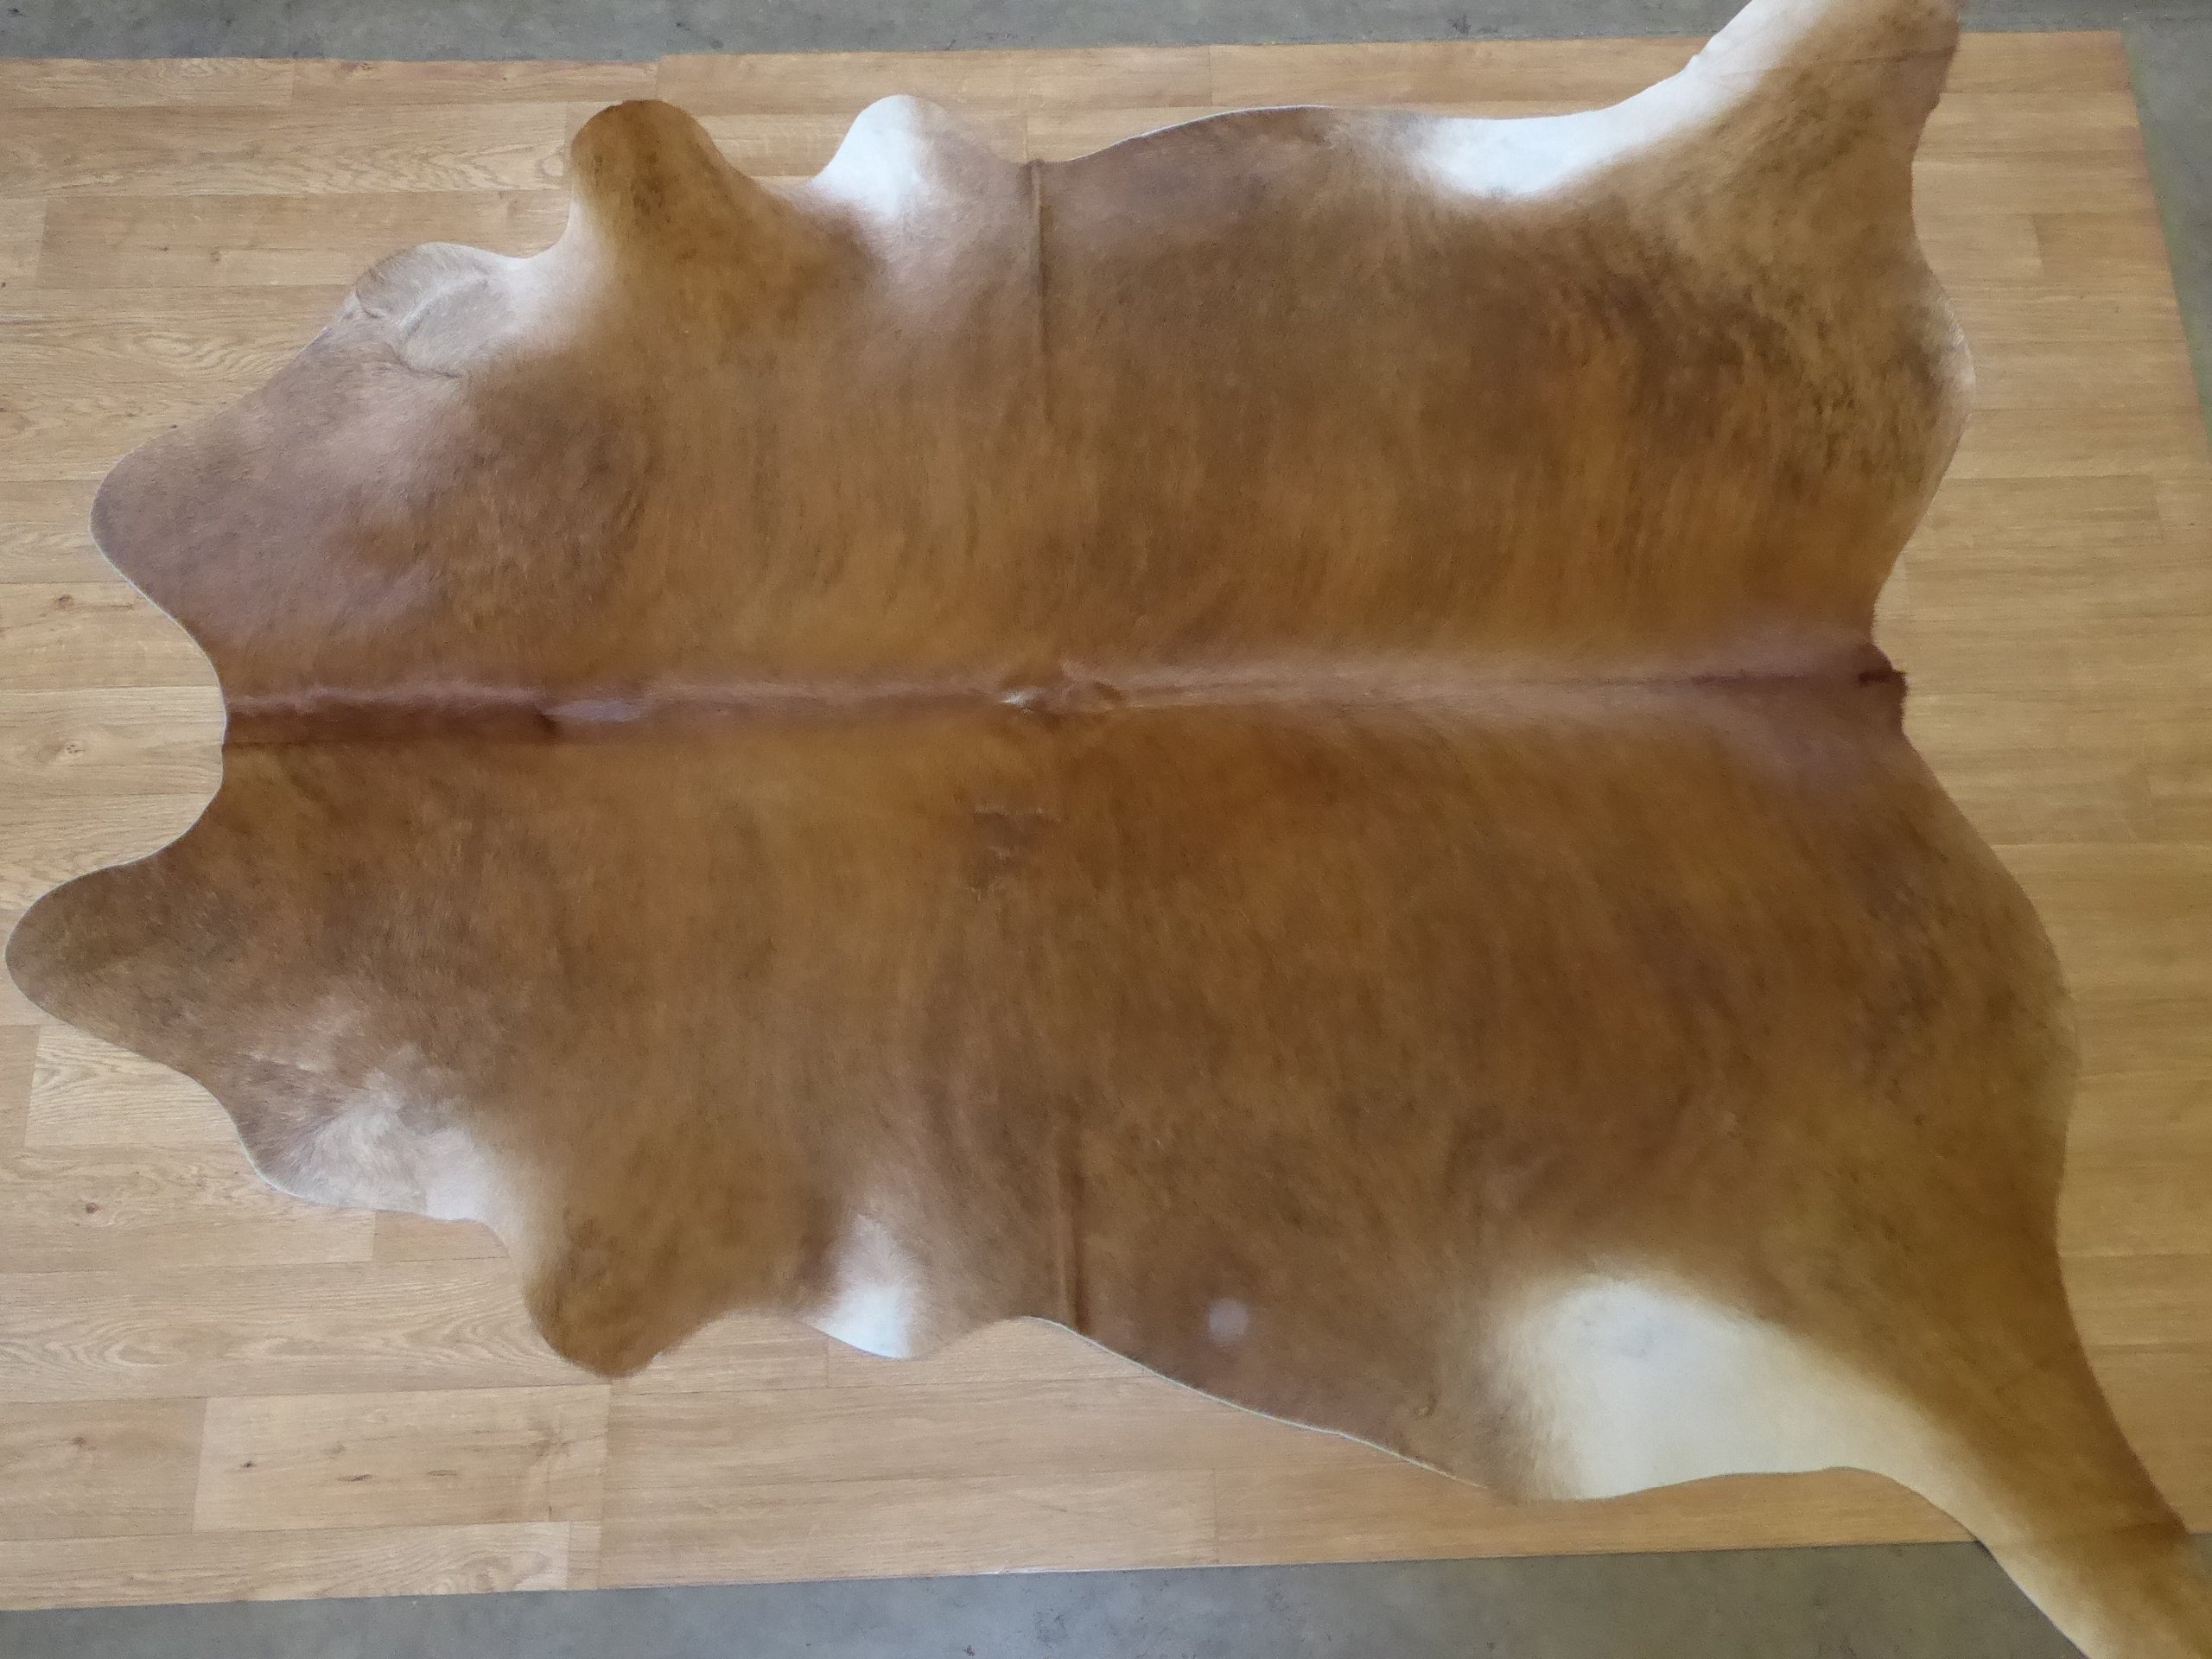 Natural Hair On Cow Hide :This Hide Is Perfect For Wall Hanging, Leather Rugs, Leather Bags & Leather Accessories (pic code : 1010980)